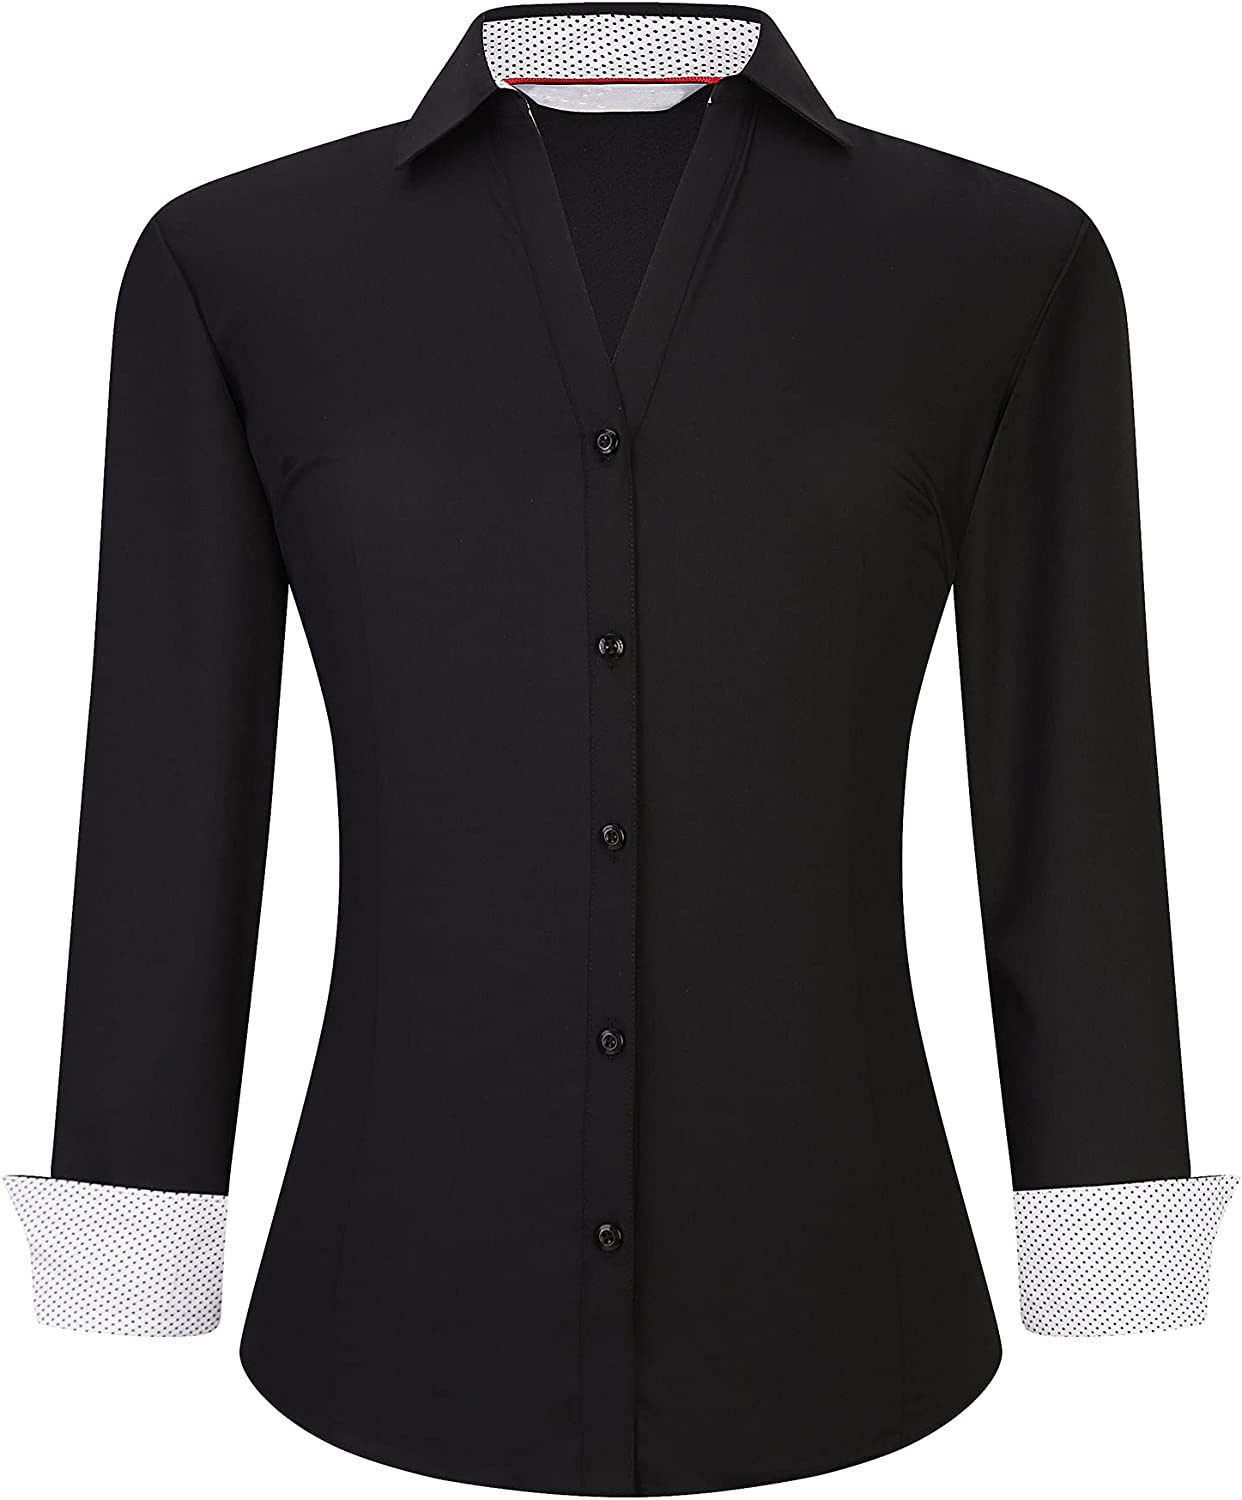 WARHORSEE Womens Button Down Shirt Long Sleeve Work Dress Shirts, V Neck Easy Care Stretchy Business Casual Blouses for Women